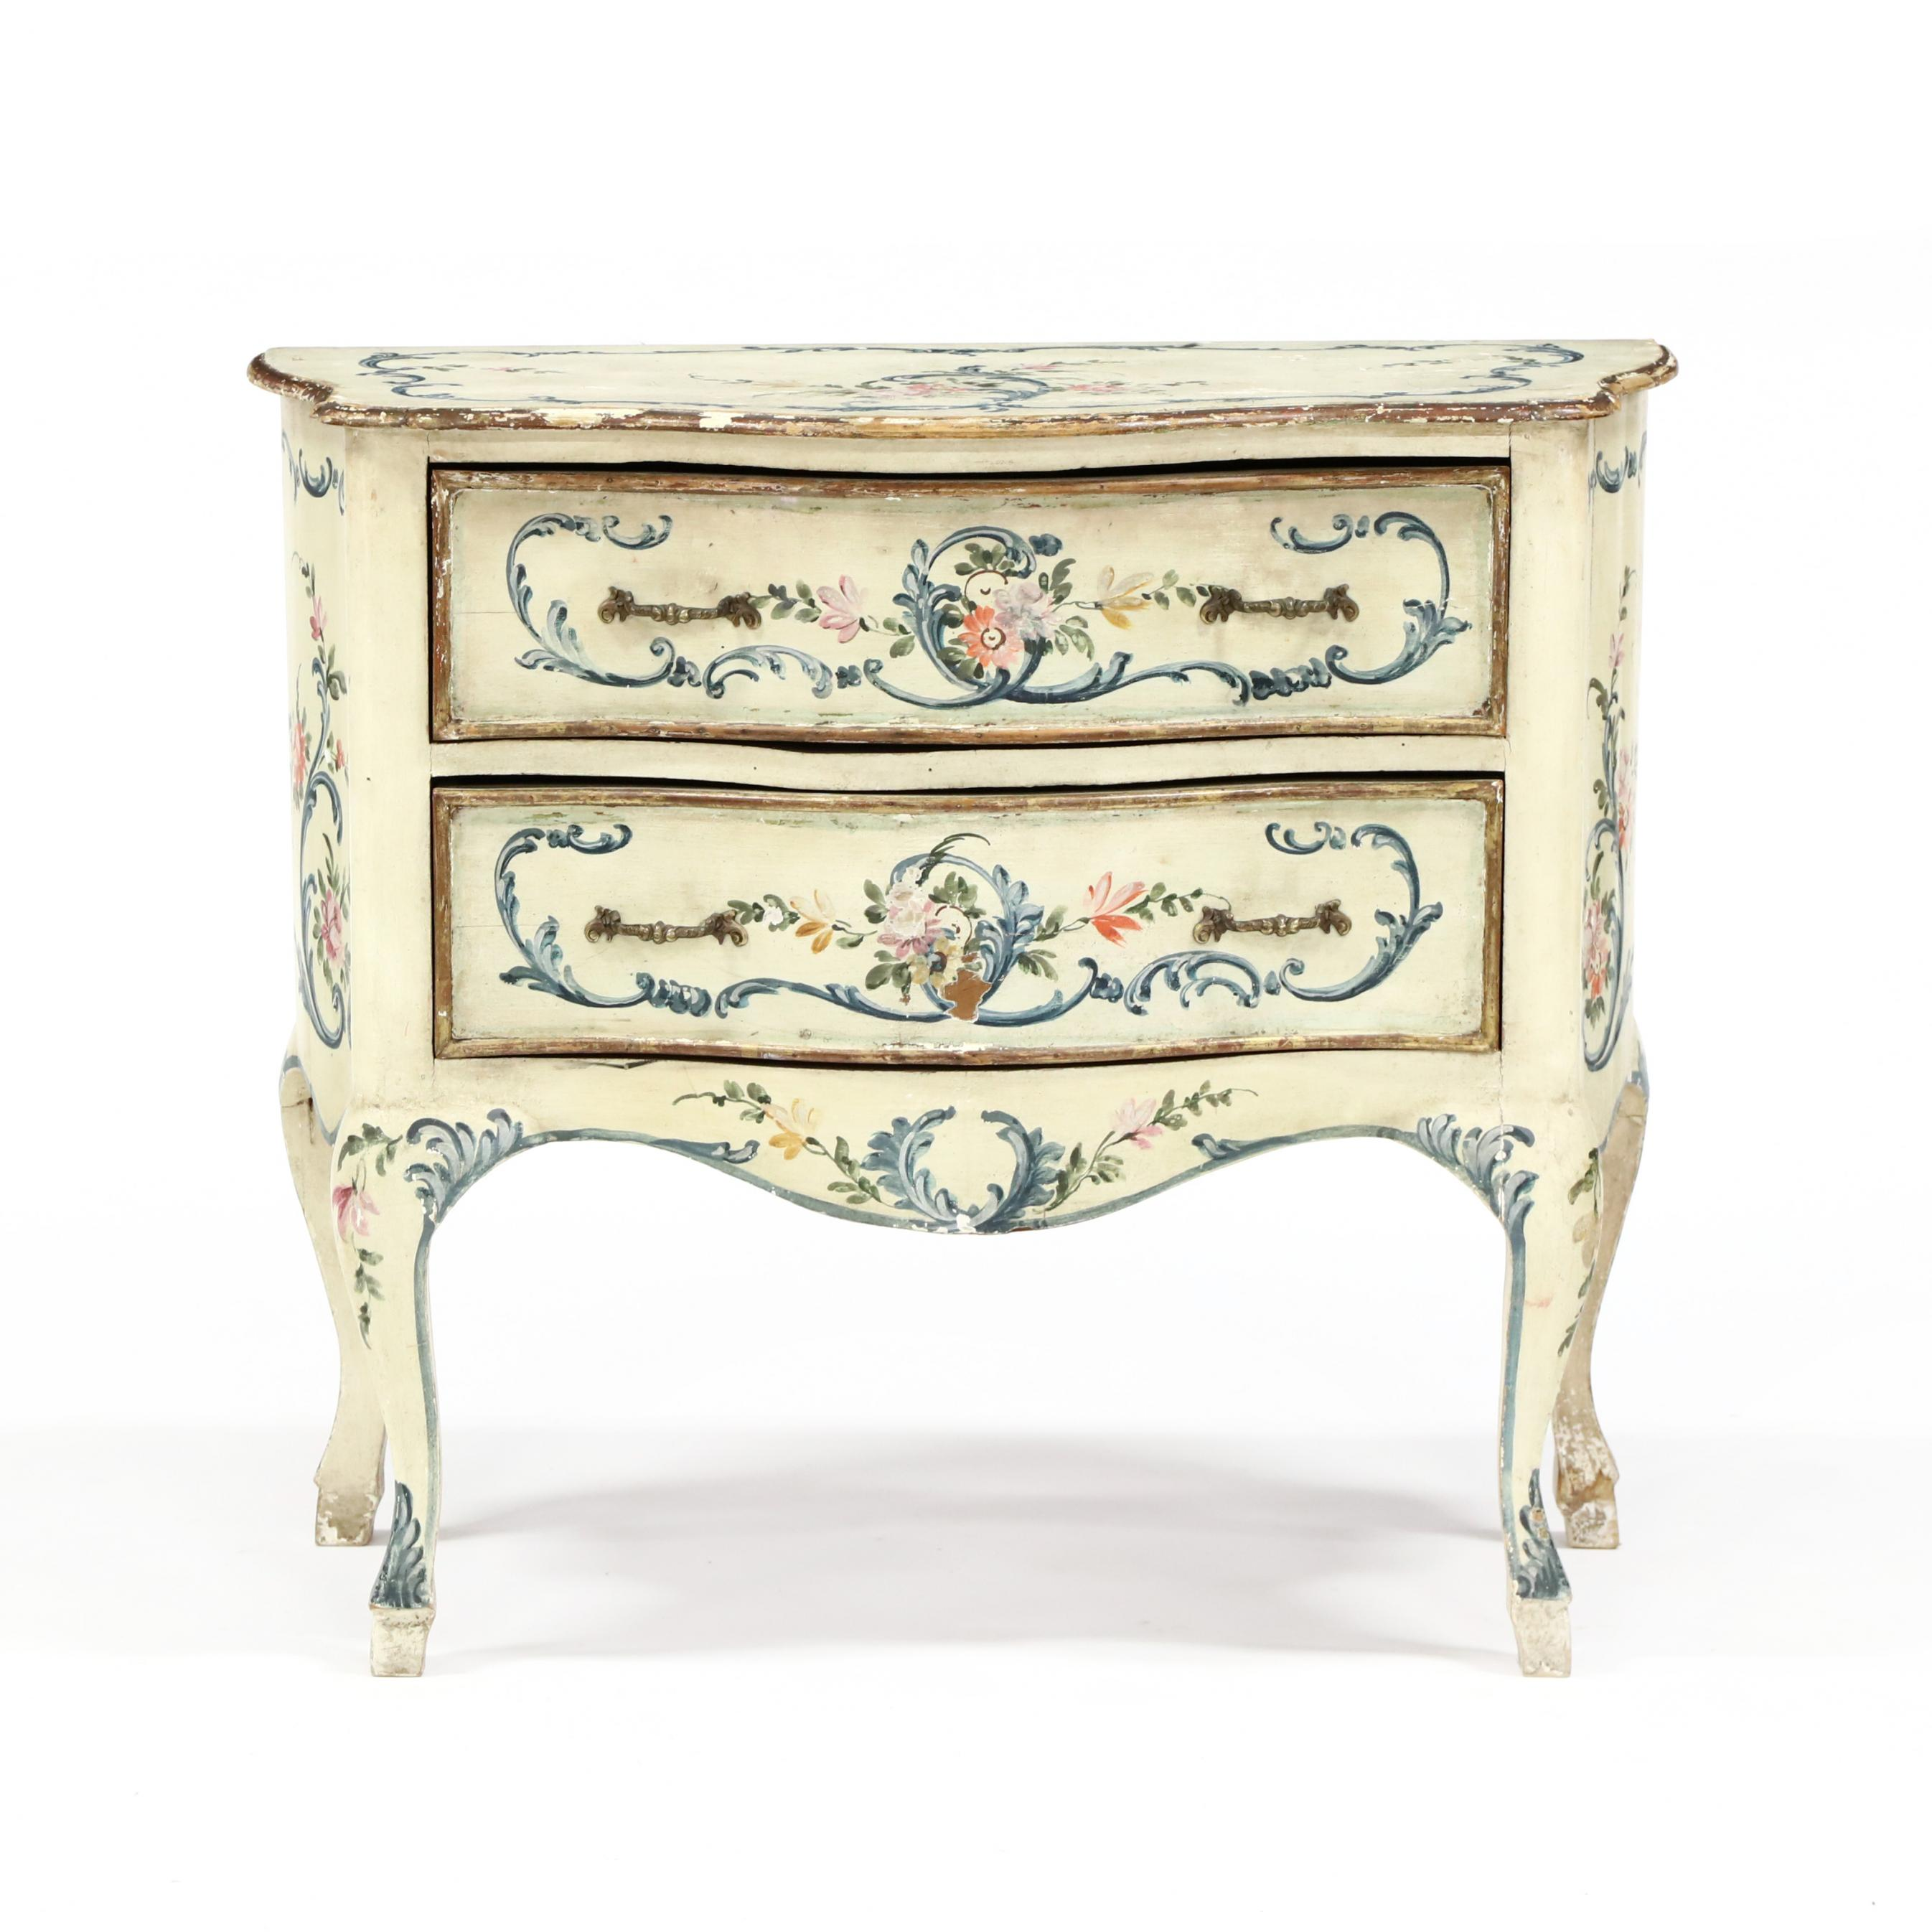 vintage-italianate-diminutive-painted-commode